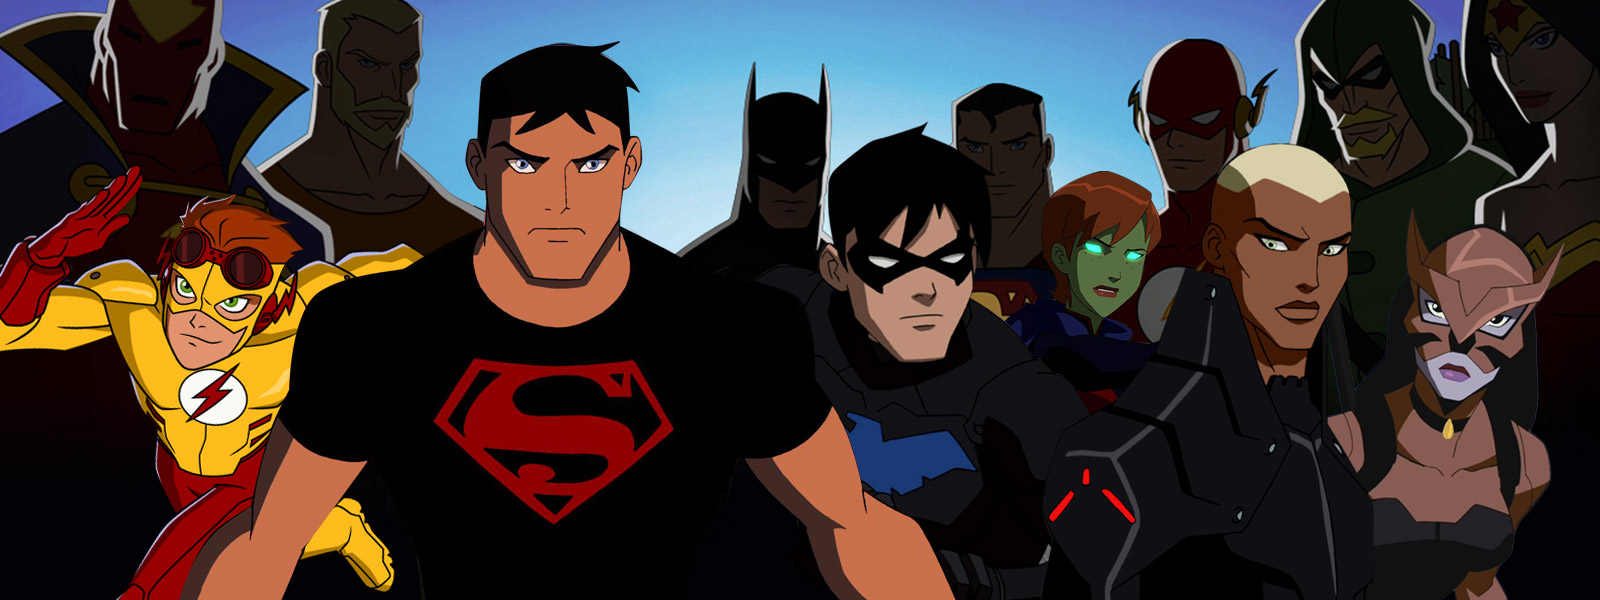 youngjustice_031513_1600.jpg